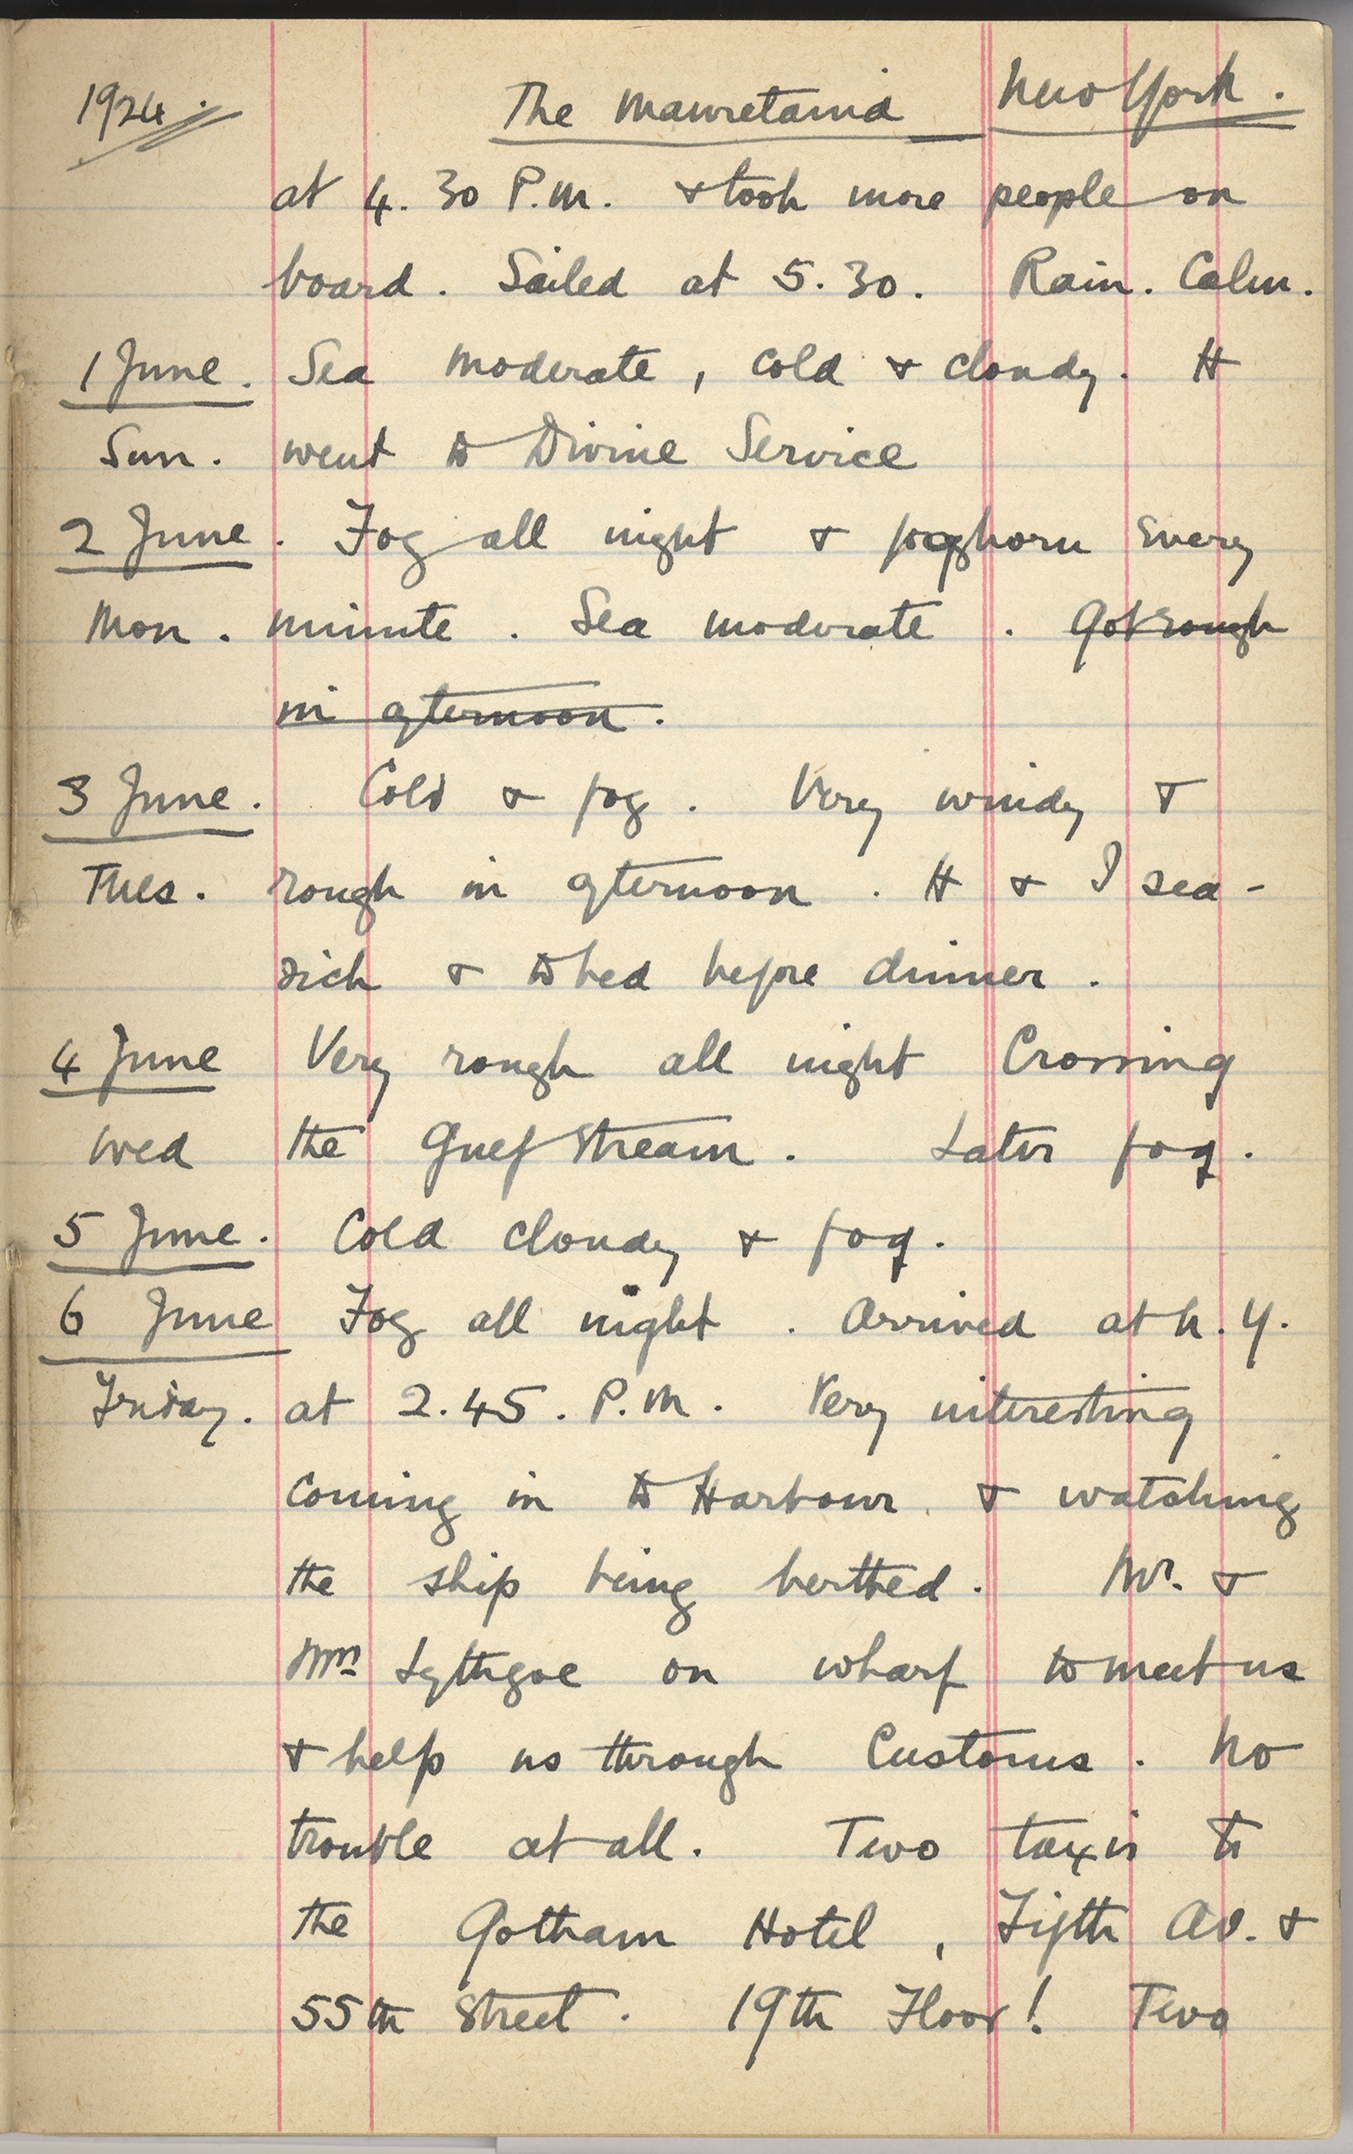 the griffith institute - minnie c. burton's diary in the griffith